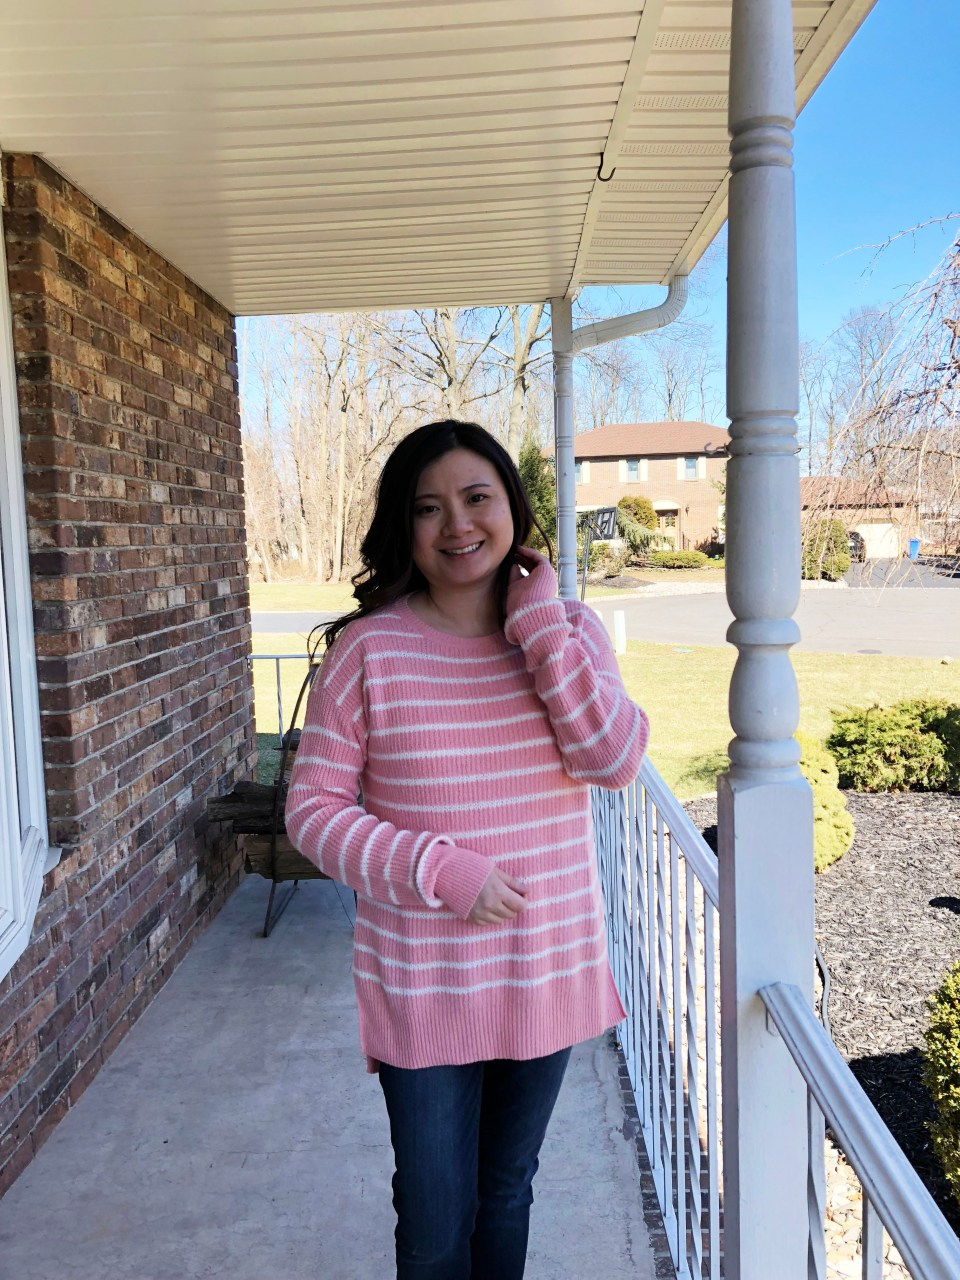 Pink & White Striped Sweater 8